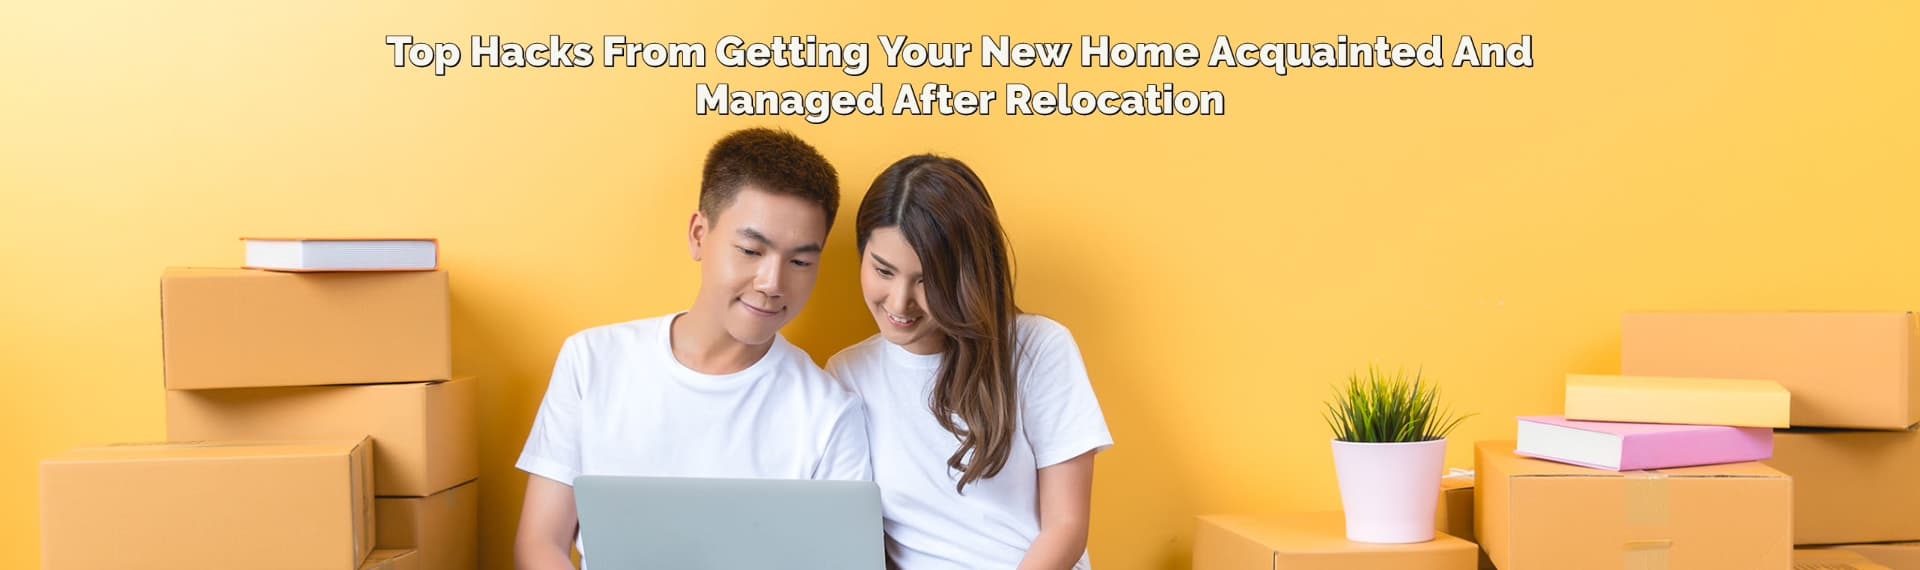 Top Hacks From Getting Your New Home Acquainted And Managed After Relocation